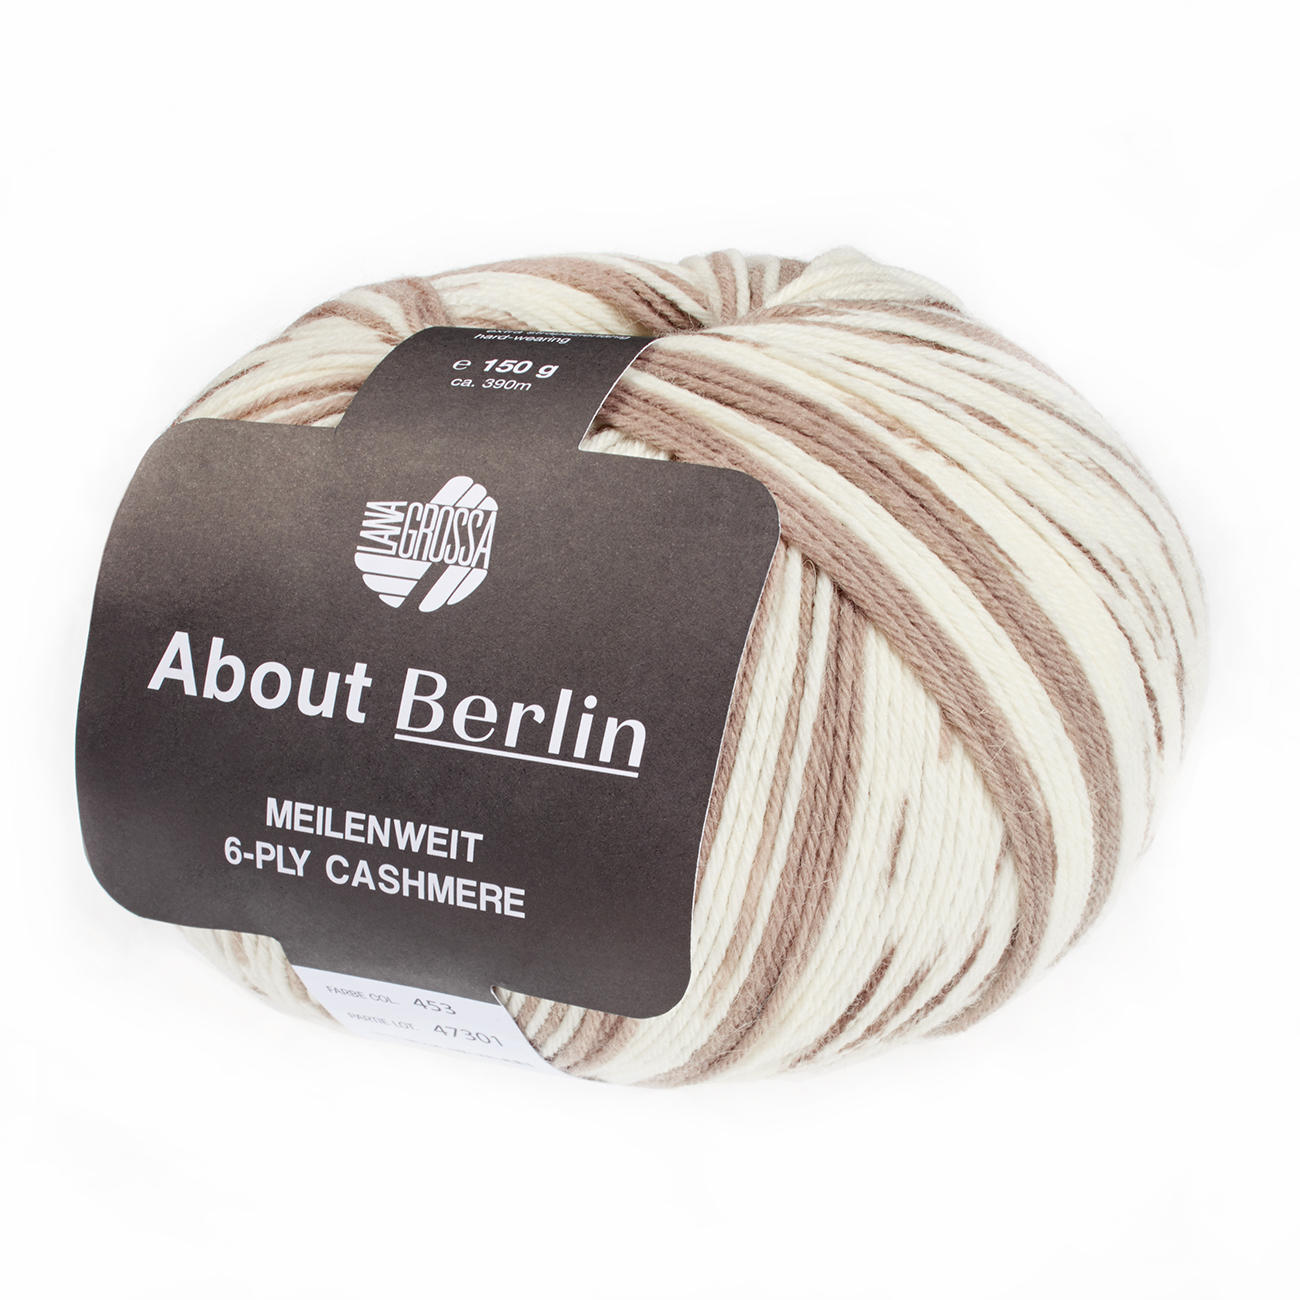 Wolle Kreativ 1 150g Fb About Berlin Meilenweit 6-PLY Cashmere Lana Grossa